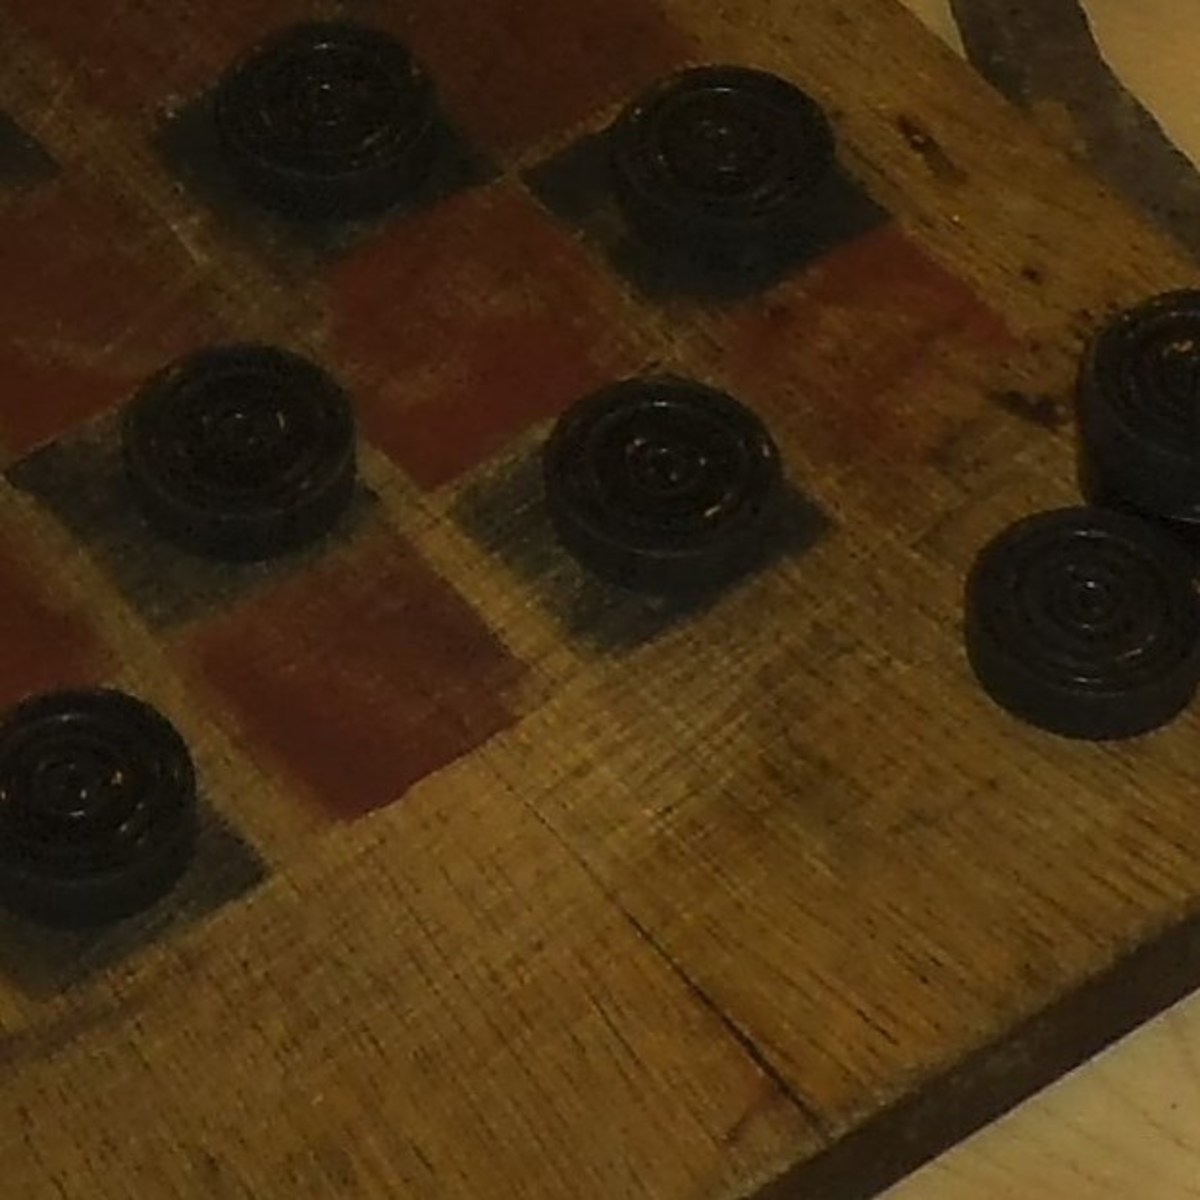 These were simple to make with a square board and some red and black paint. Cut slices from a slender tree branch to make the checker pieces.